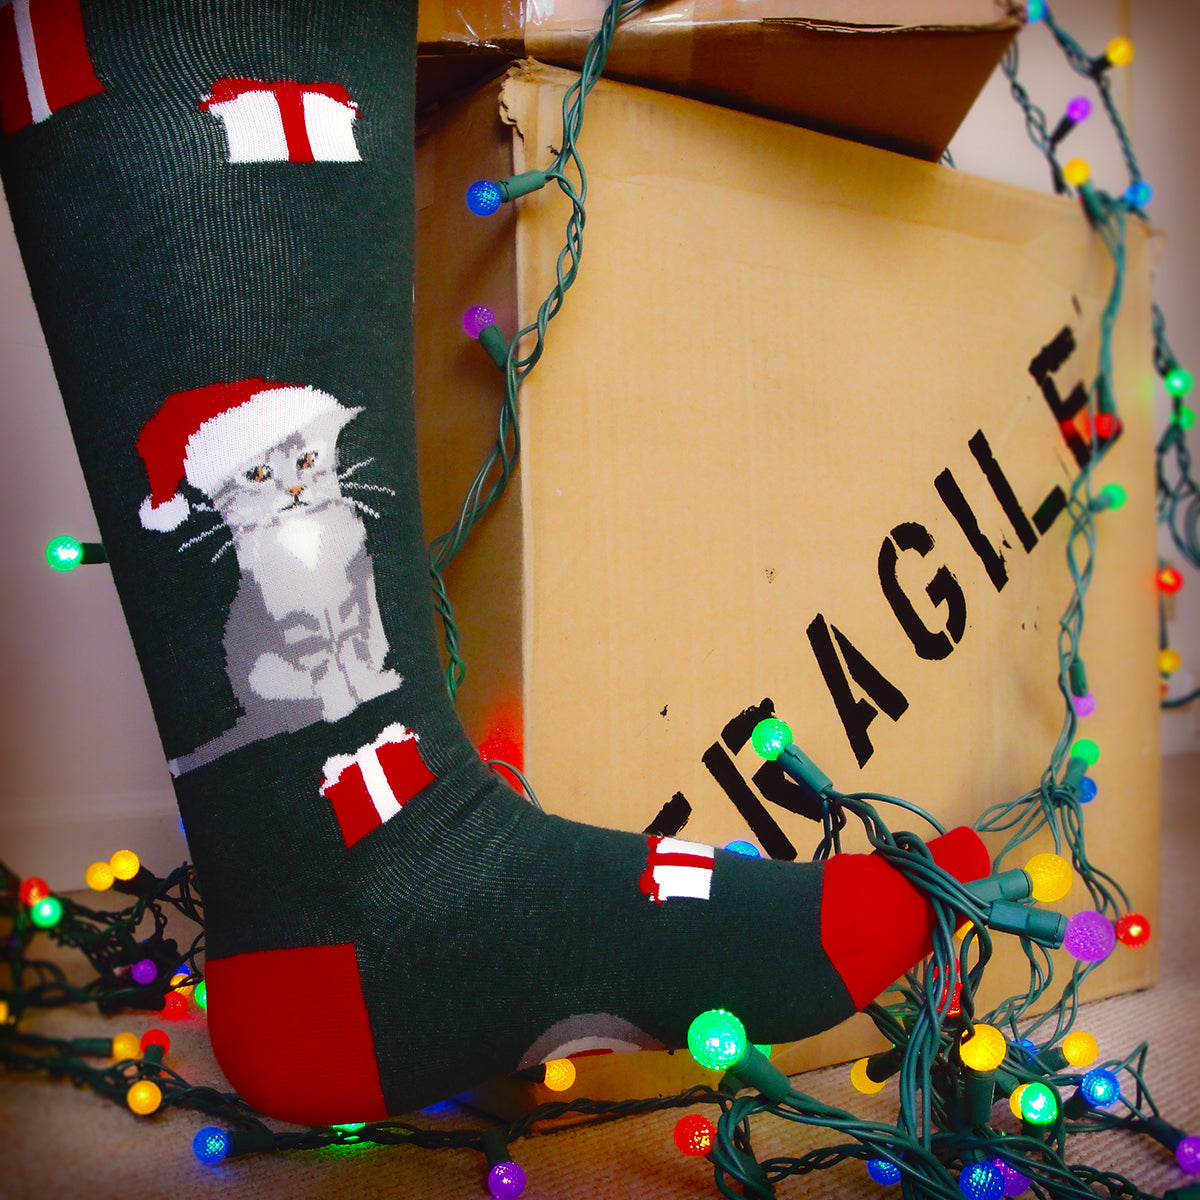 Christmas socks like our red & green knee high socks with Santa cat are what everyone wants for Christmas.